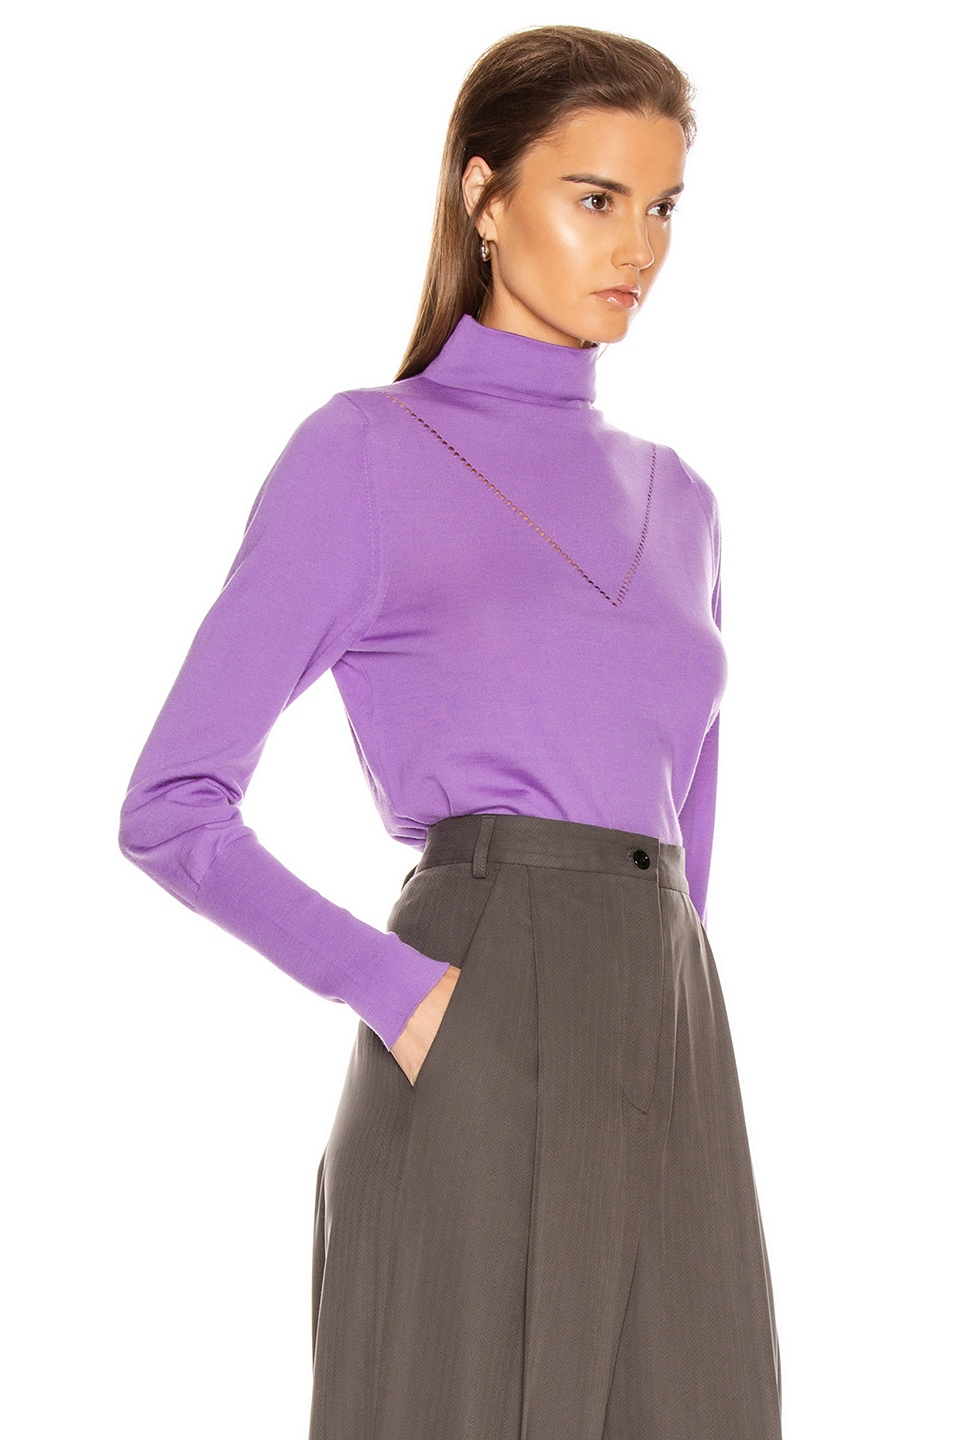 Image 2 of Victoria Beckham Ajure HIgh Neck Sweater in Bright Lilac